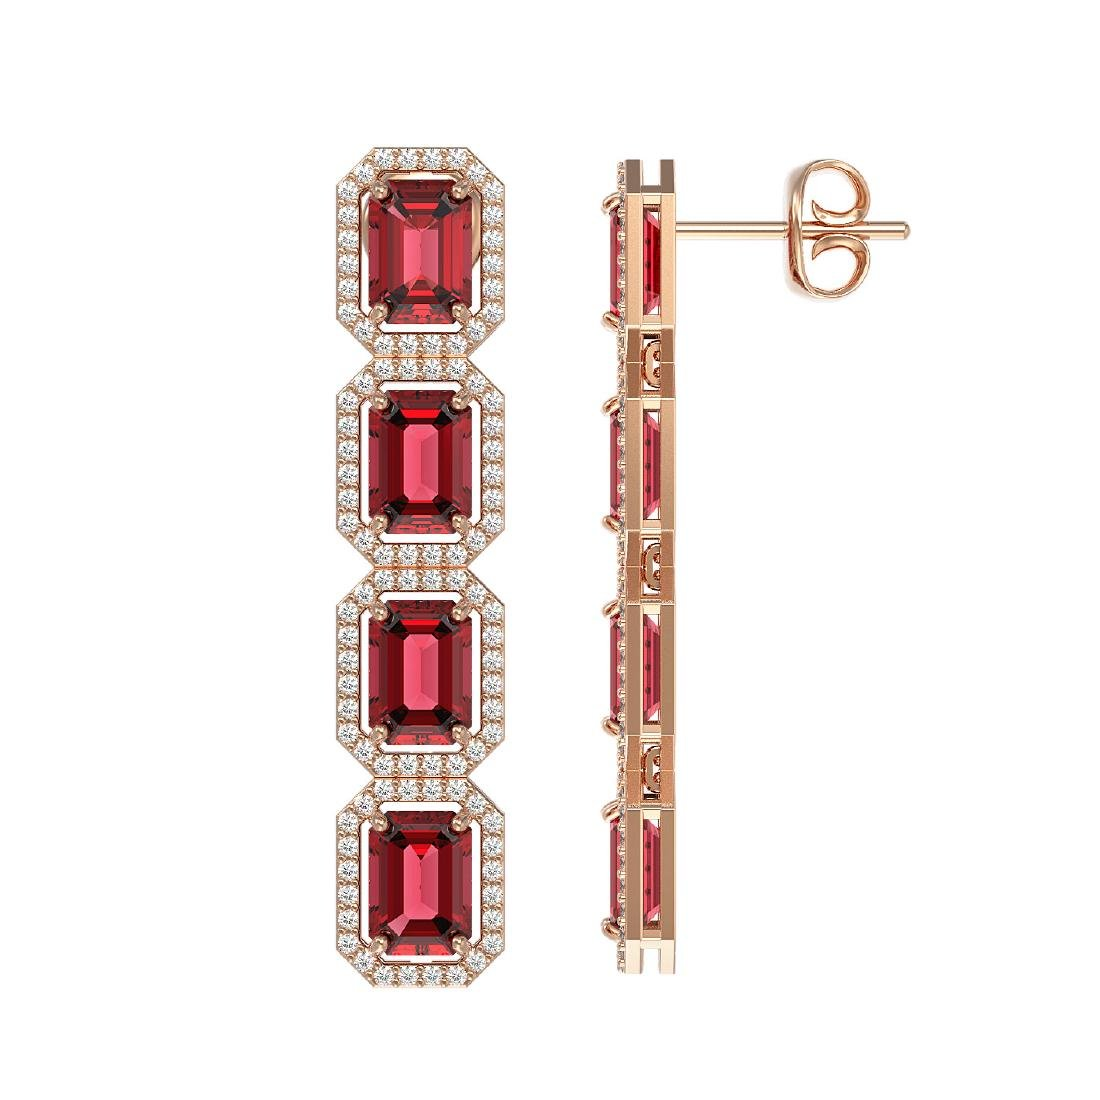 12.41 CTW Tourmaline & Diamond Halo Earrings 10K Rose - 2